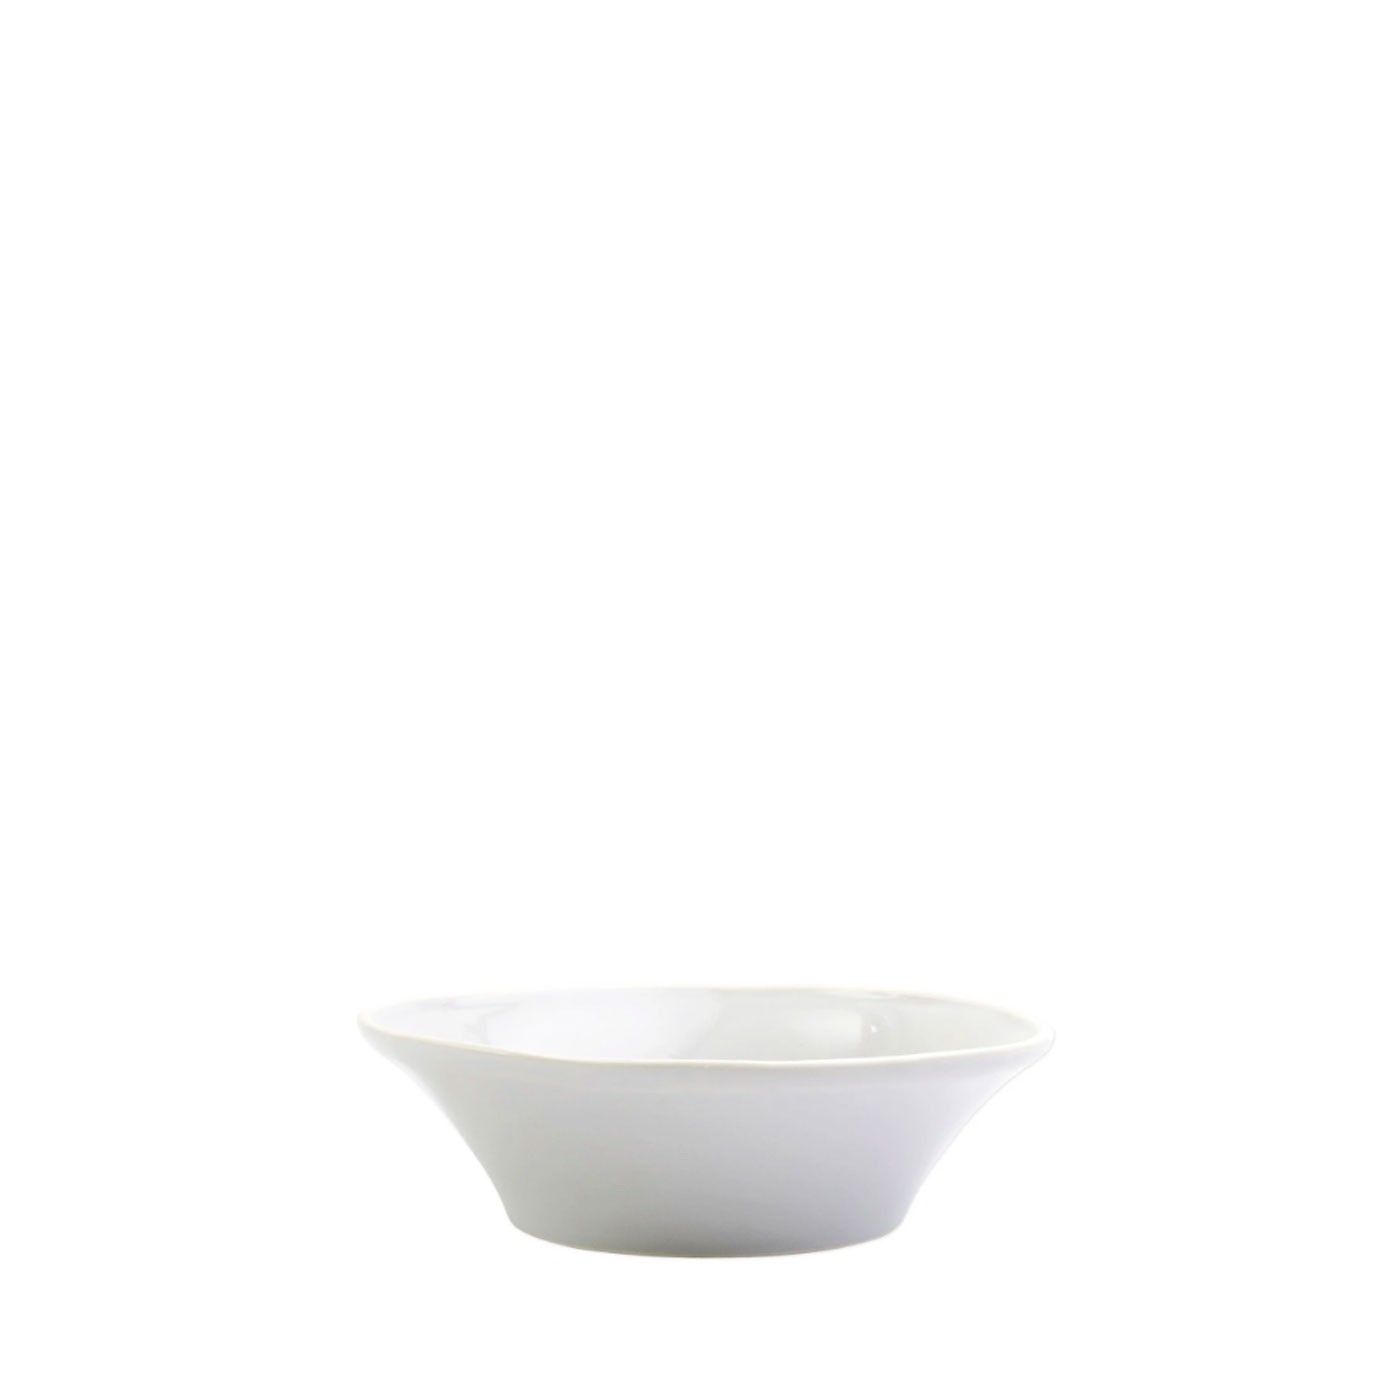 Chroma White Cereal Bowl